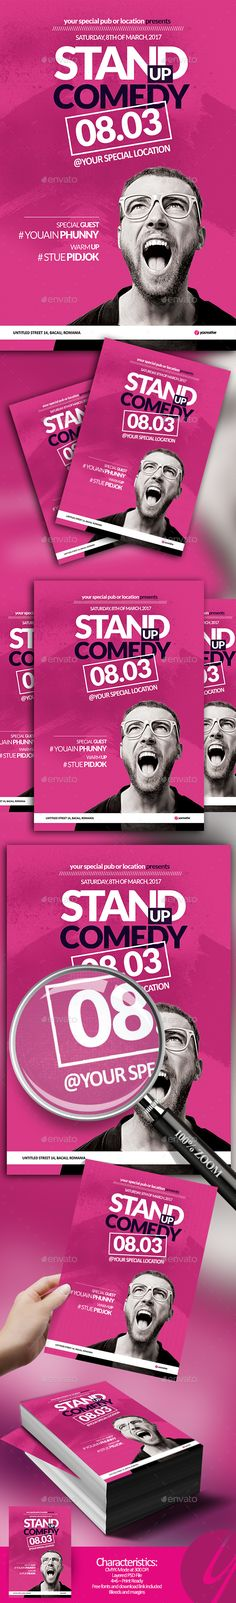 Stand Up Comedy Flyer - Events Flyers